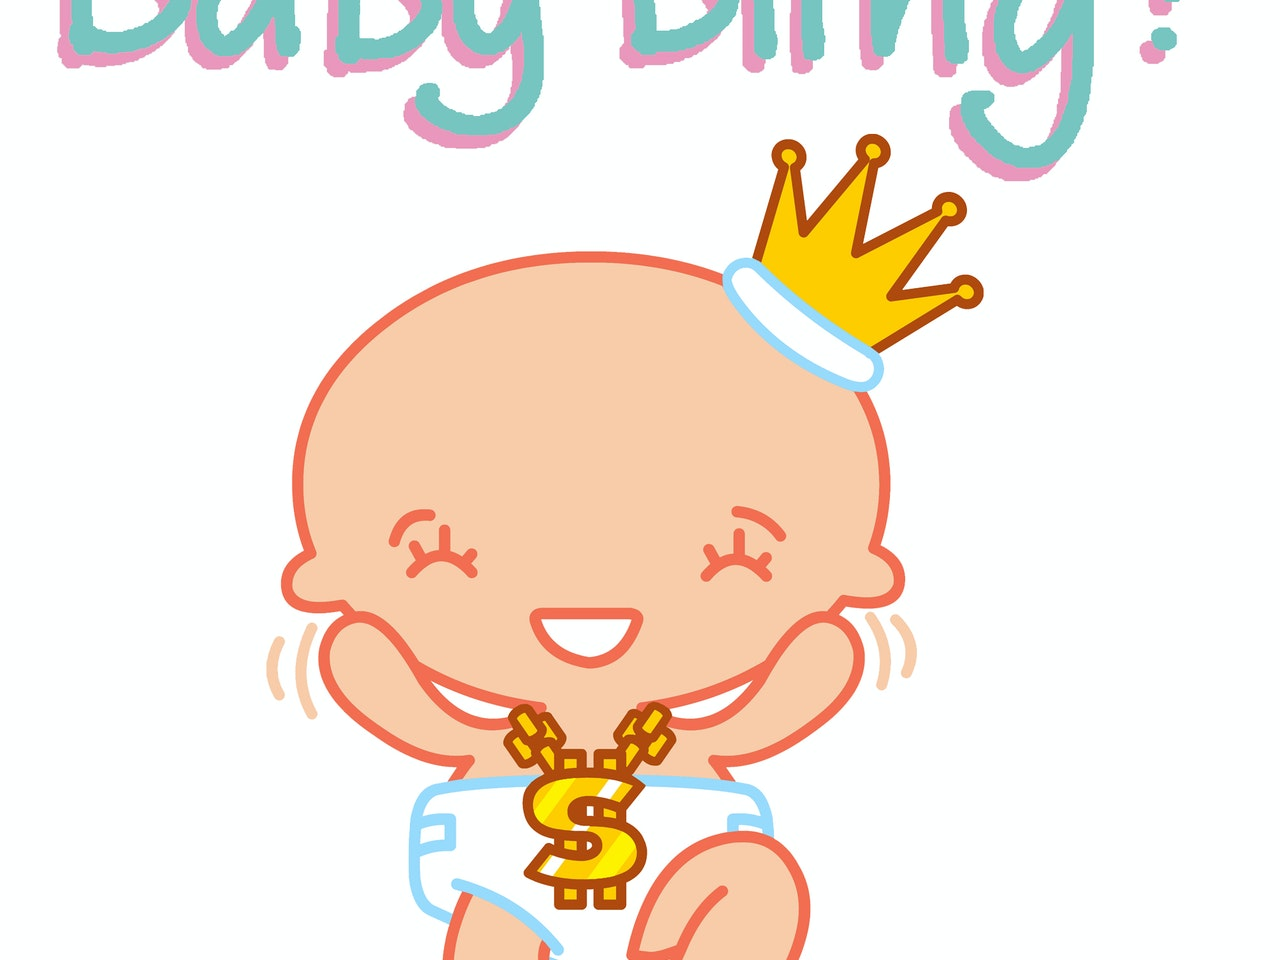 cute cool manga anime baby character design with gold crown , chain and nappy-bling!